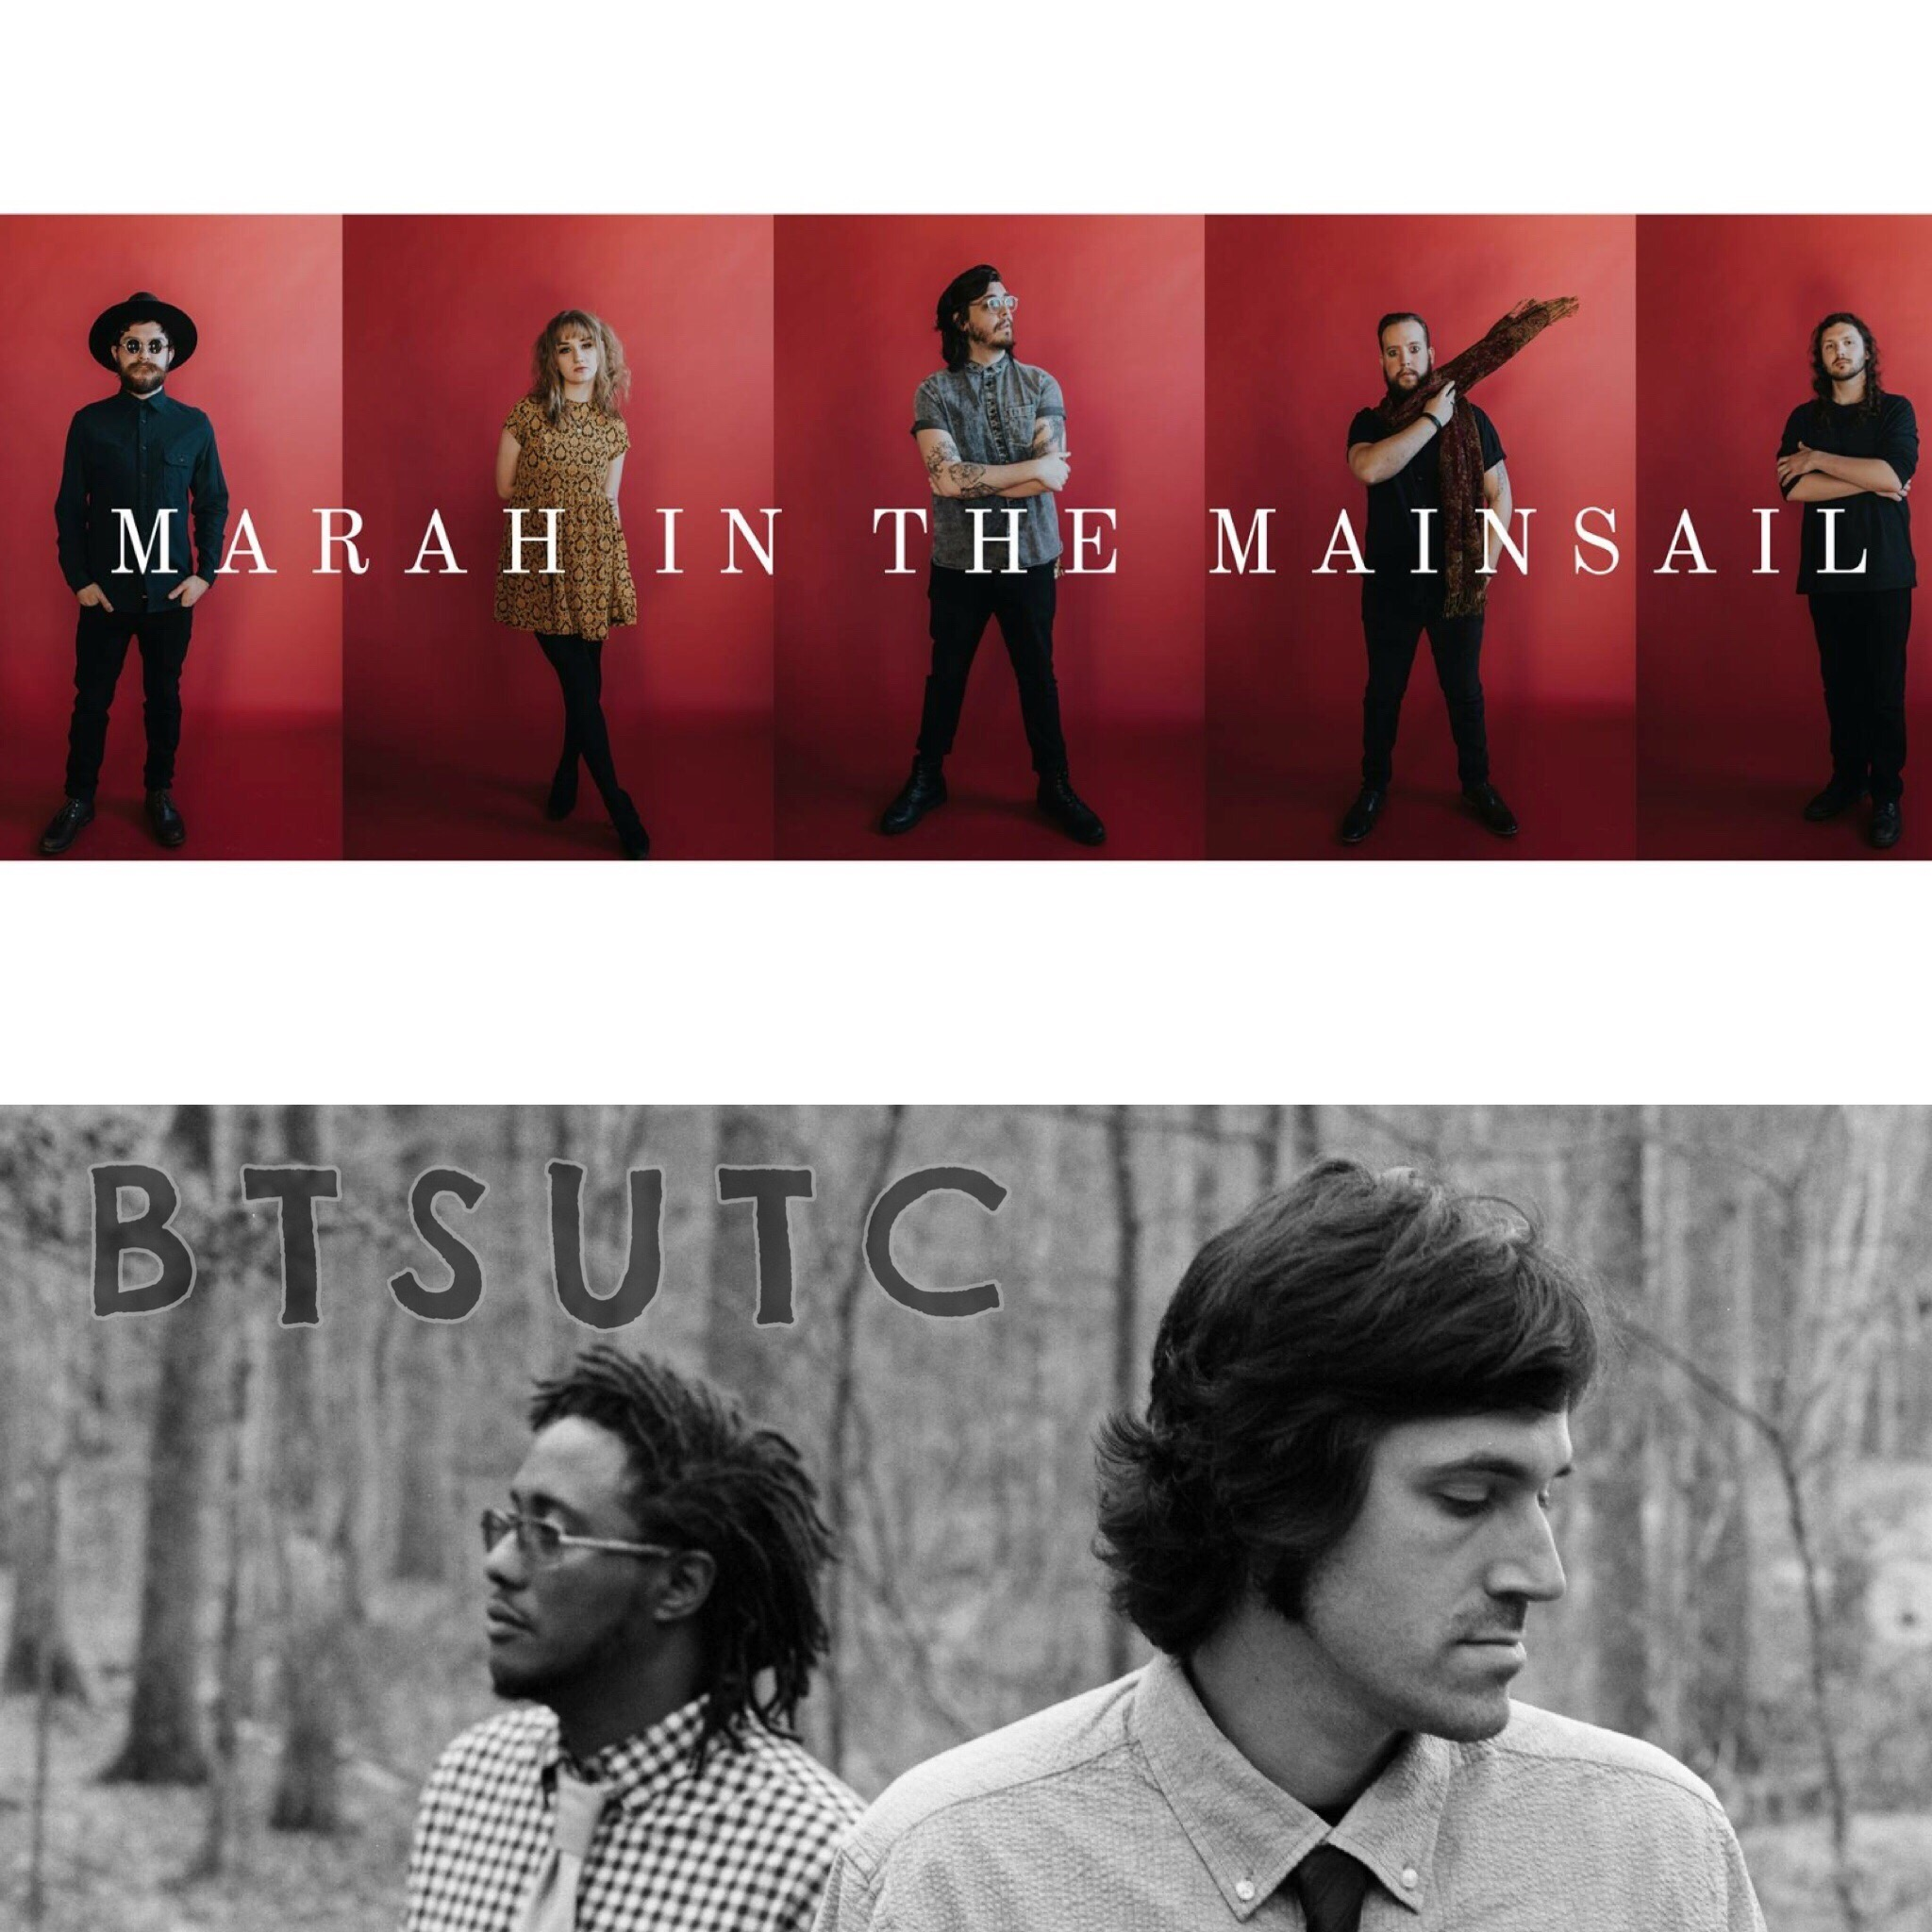 Marsh In The Mainsail with Bless These Sounds Under The City @ The Evening Muse